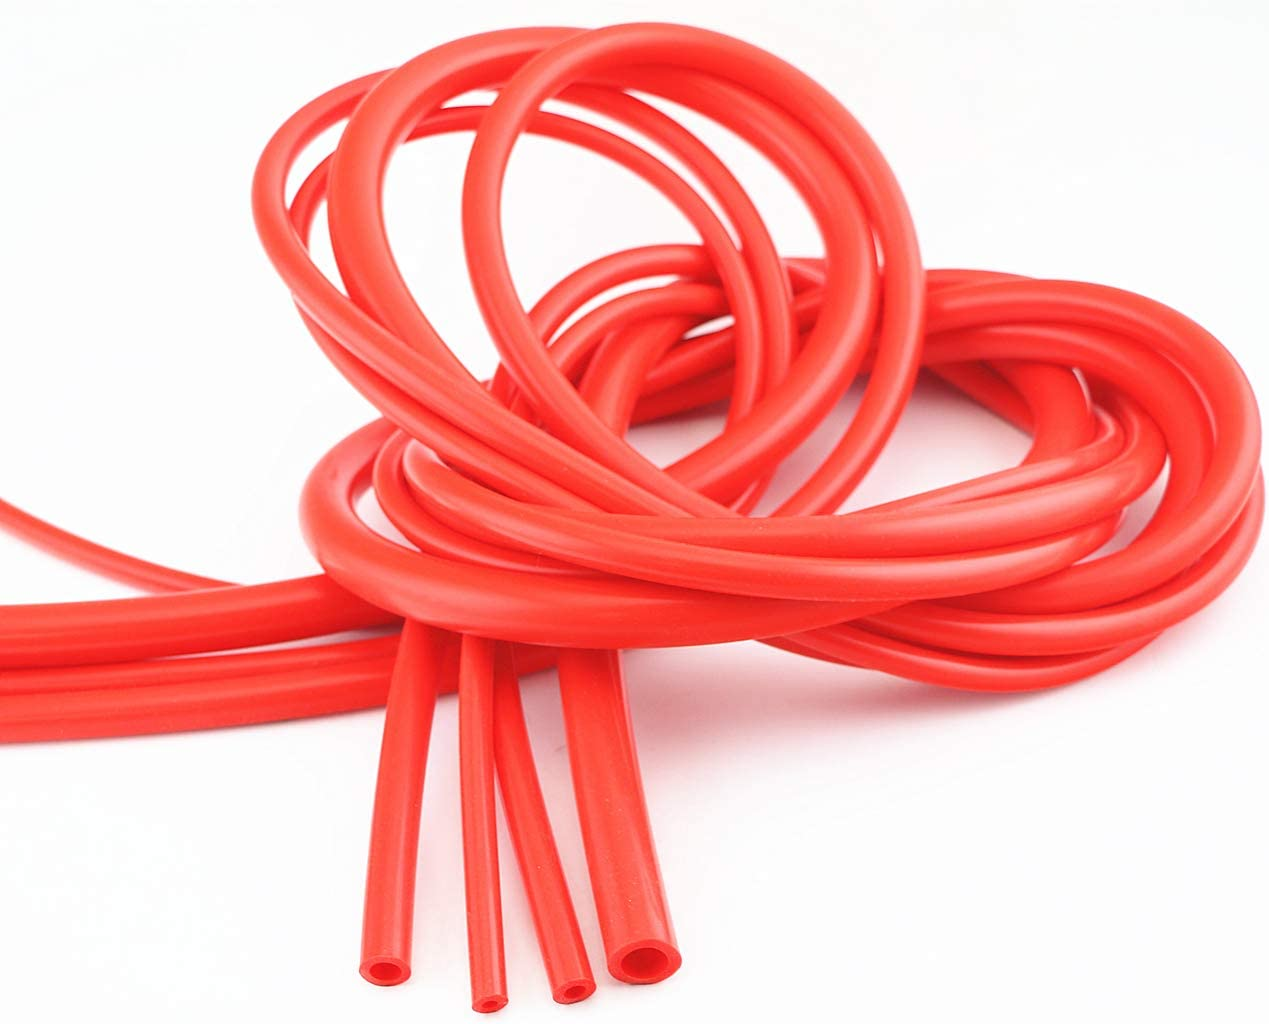 QIKE Universal 4mm/6mm/8mm/12mm /Inner Diameter High Performance Silicone Vacuum Hose Tube Kit (red, 4size): Automotive